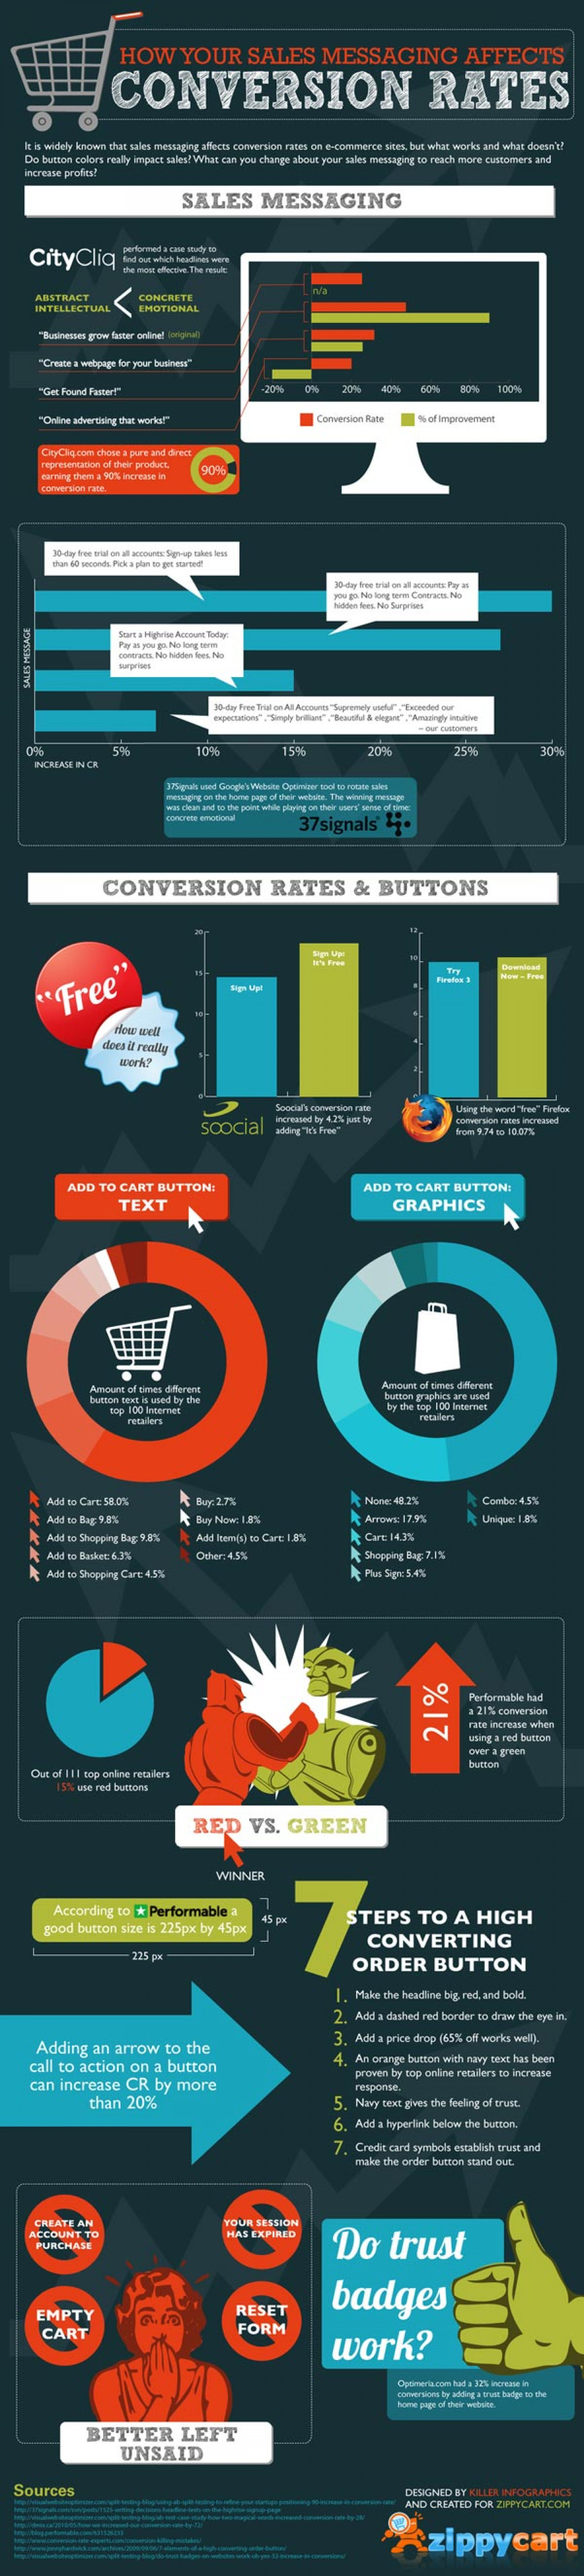 How Your Sales Messages Affects Conversion Rates  Infographic